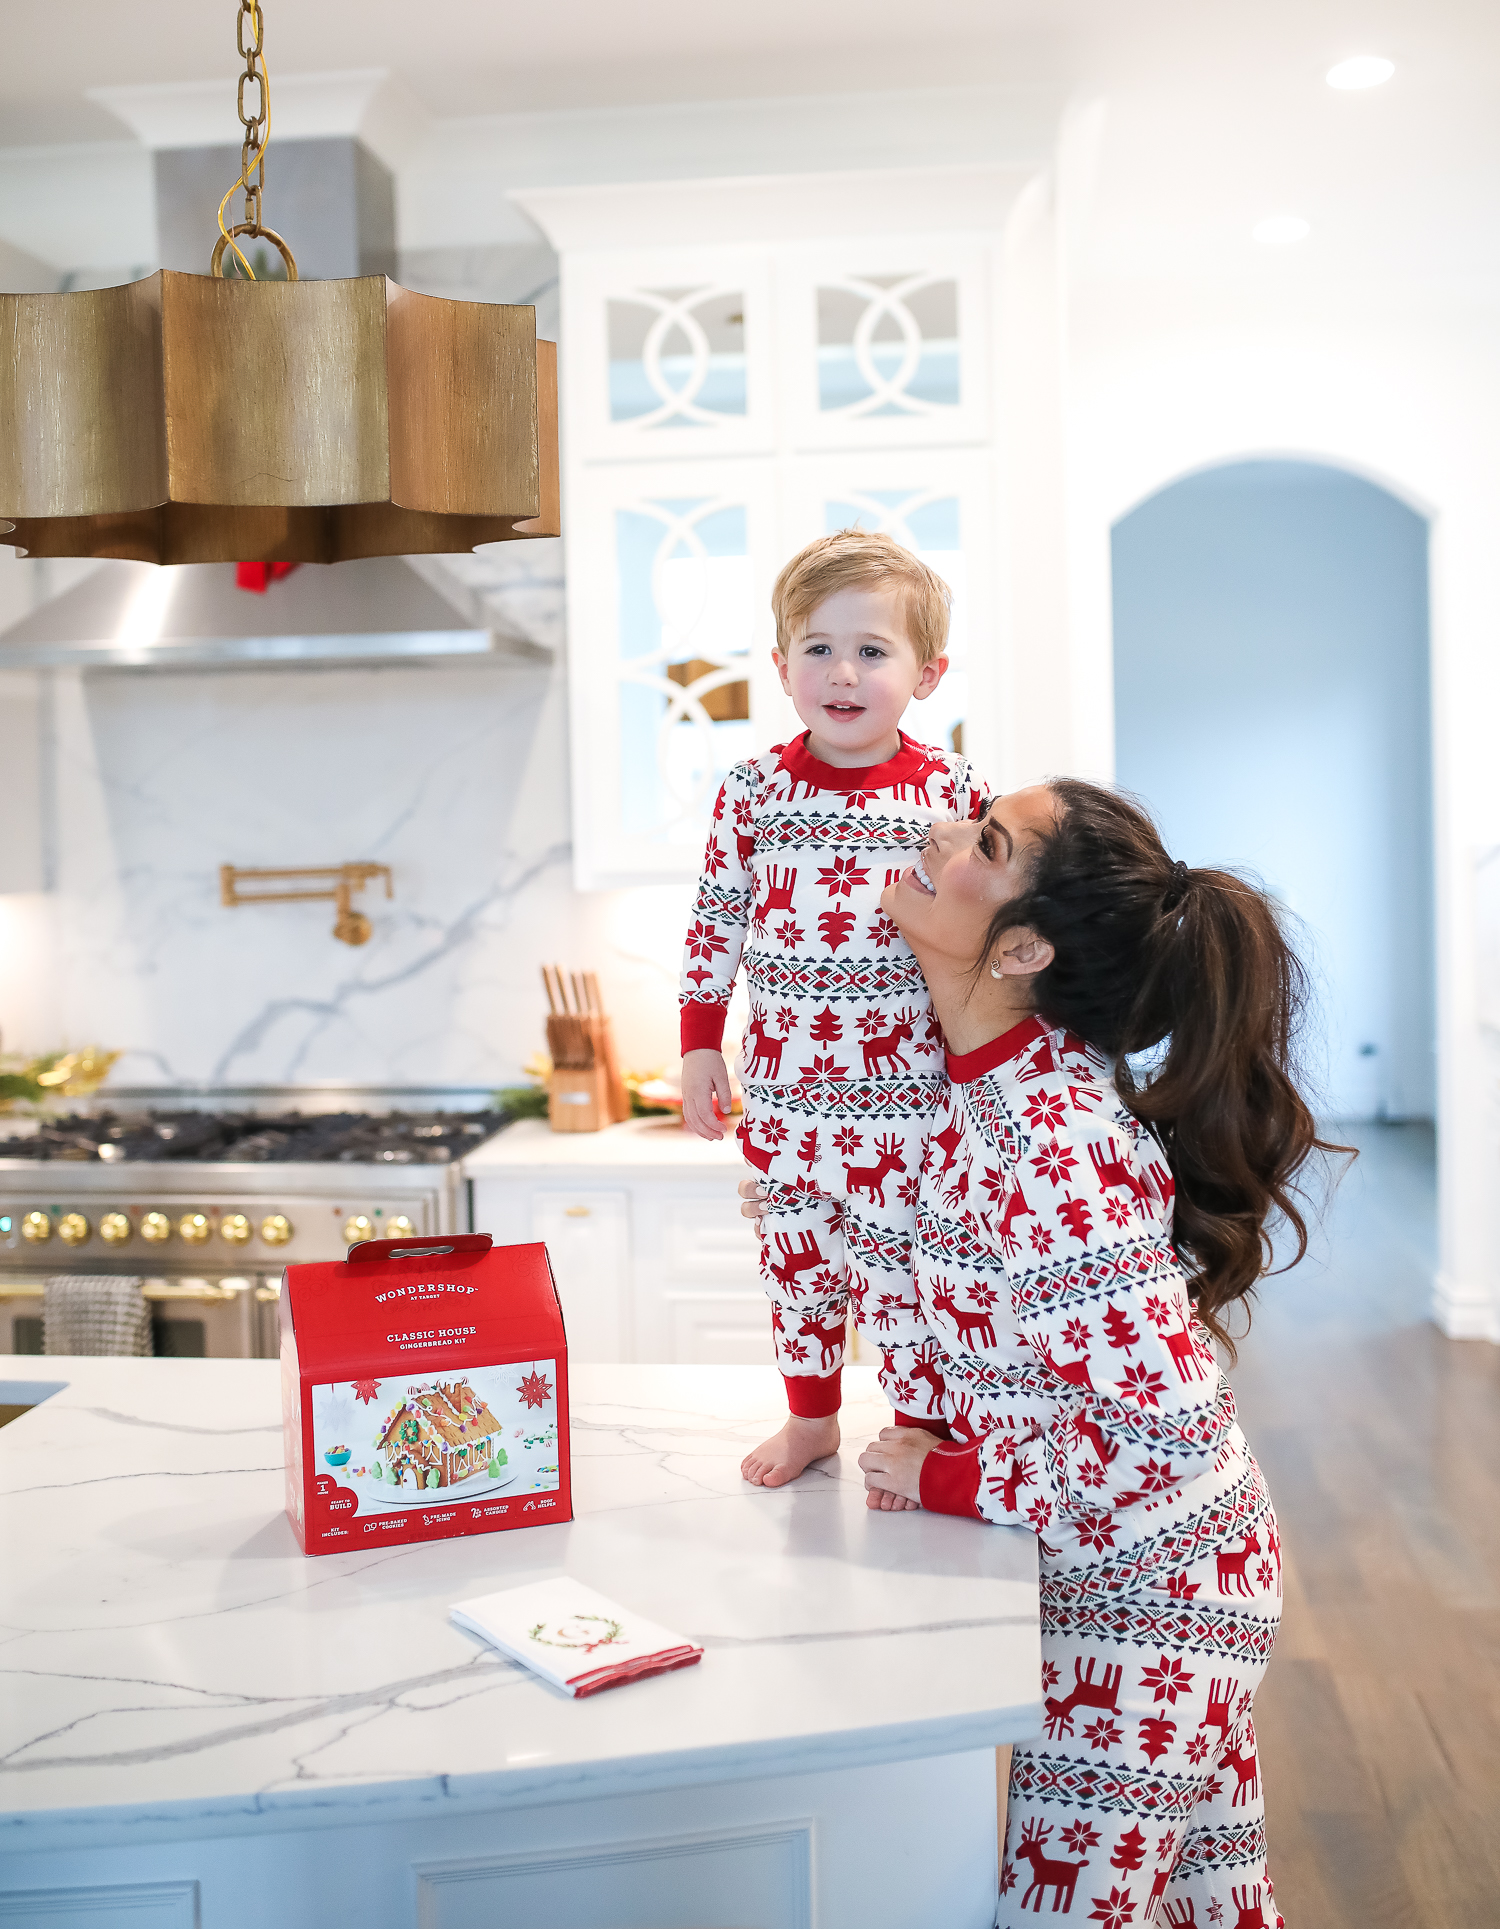 Hanna Anderson pjs christmas, family matching christmas pajamas, christmas decor pajamas 2019 pinterest, babies christmas pajamas matching, the sweetest thing blog-5 | Coco & Crew In Matching Hanna Andersson Christmas Pajamas by popular Oklahoma life and style blog, The Sweetest Thing: image of a family decorating gingerbread houses and wearing Hanna Andersson Long John Pajamas In Organic Cotton, Hanna Andersson Adult Long John Pant In Organic Cotton, Hanna Andersson Women's Long John Top In Organic Cotton, Hanna Andersson Adult Long John Top In Organic Cotton, and Hanna Andersson Adult Long John Pant In Organic Cotton.